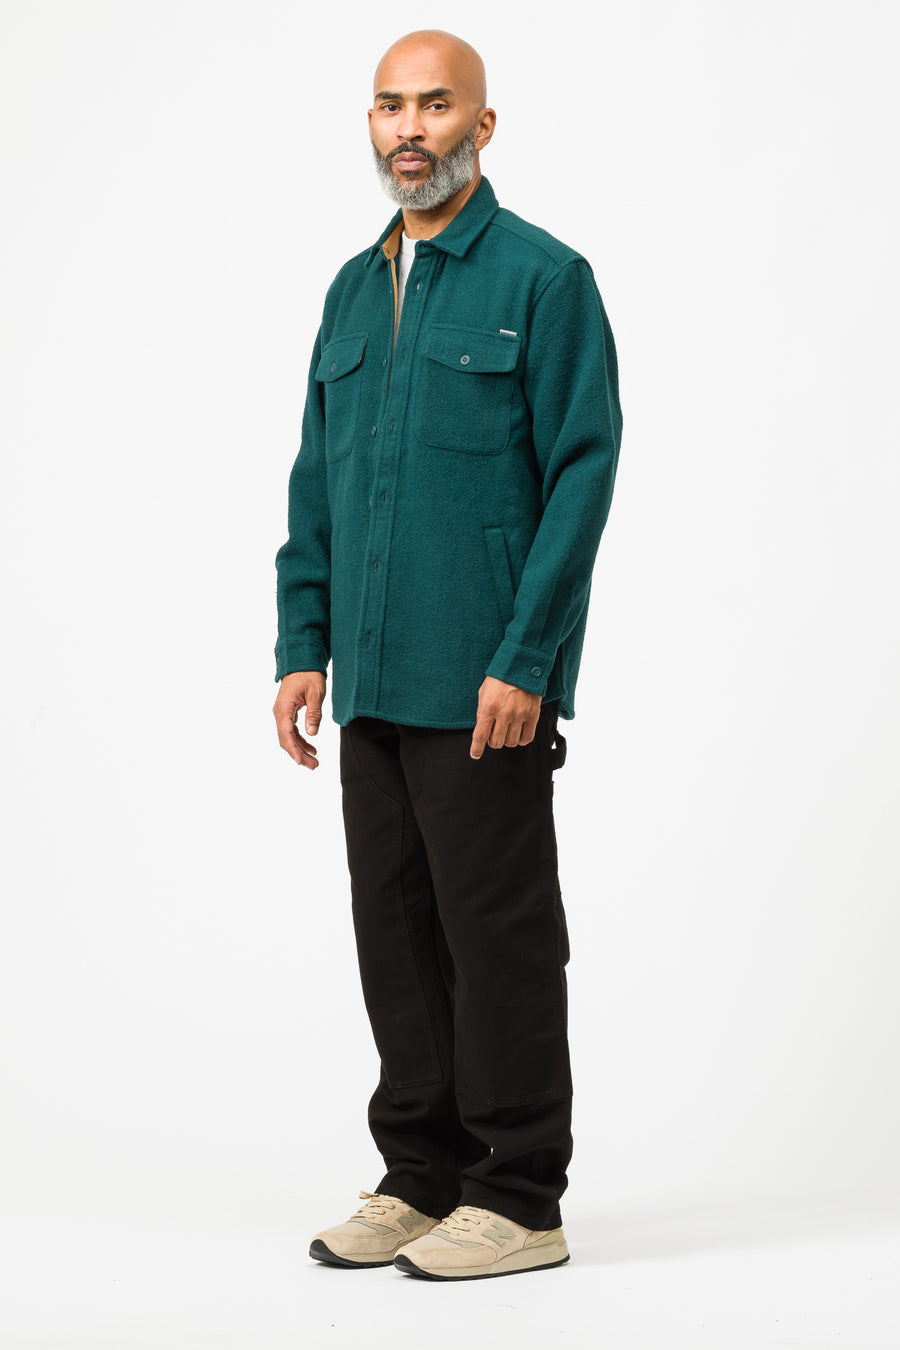 Carhartt WIP Milner Shirt Jacket in Dark Fir - Notre